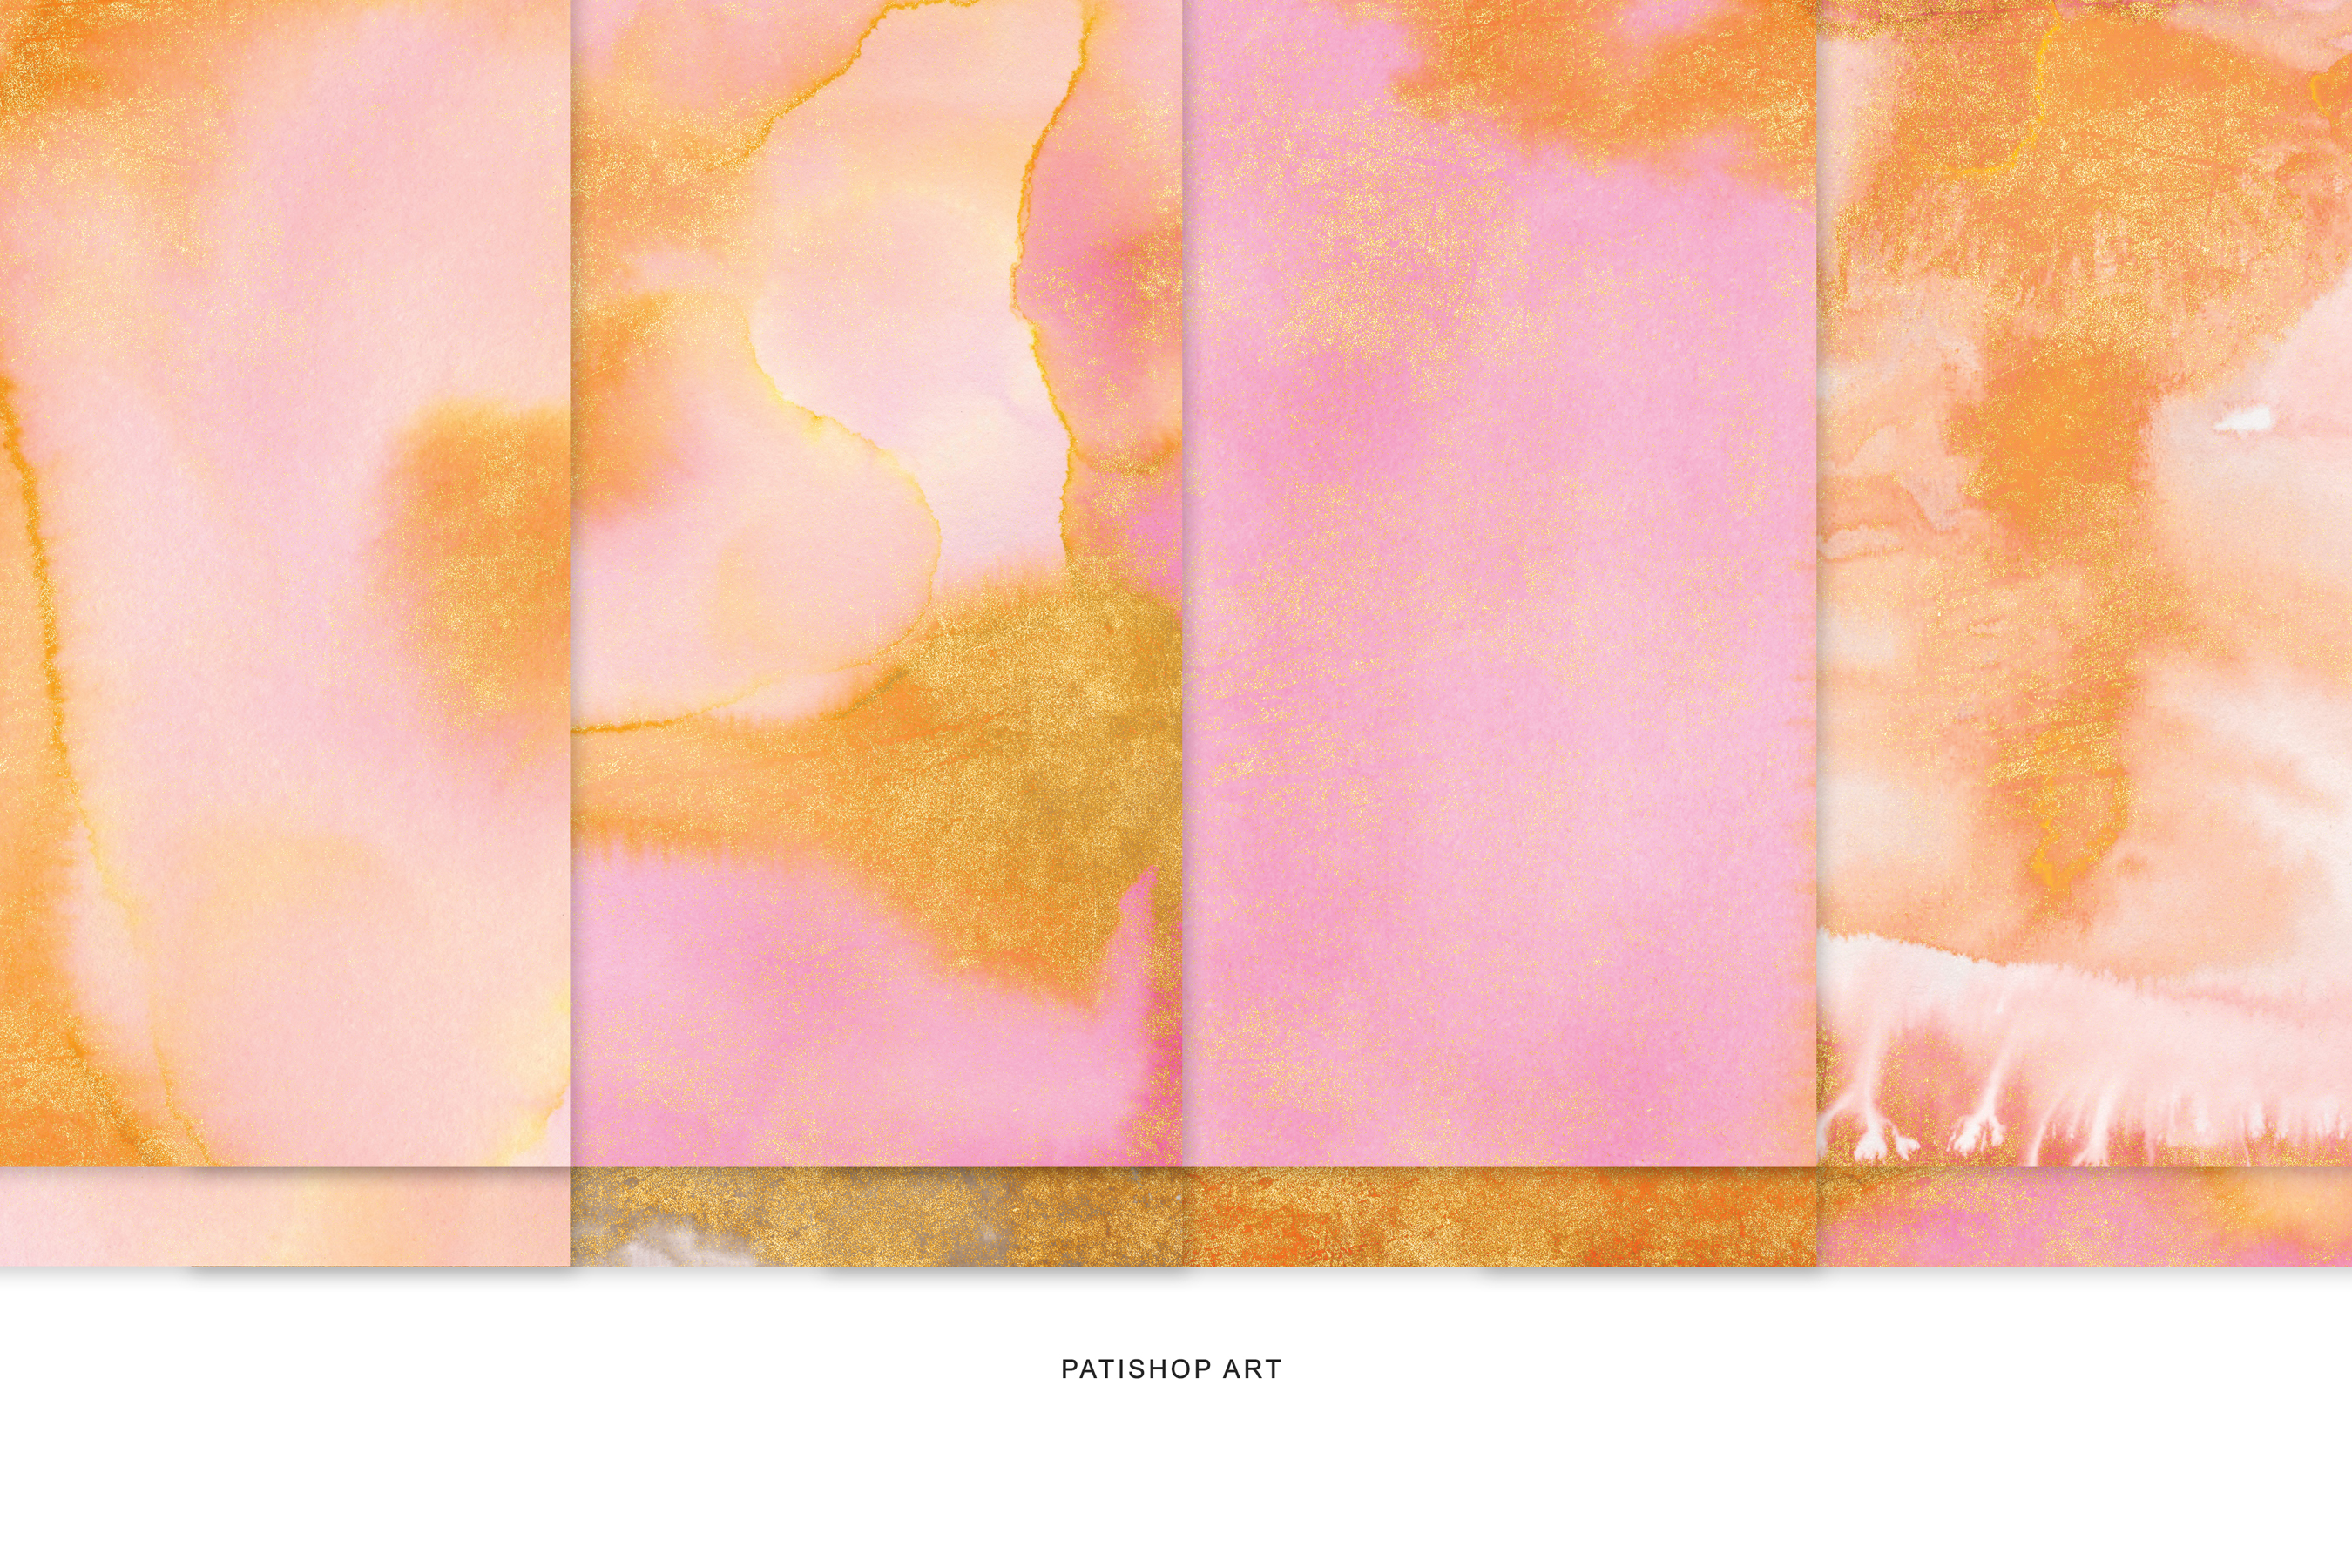 Watercolor Glittered Orange & Pink Background 5x7 example image 4